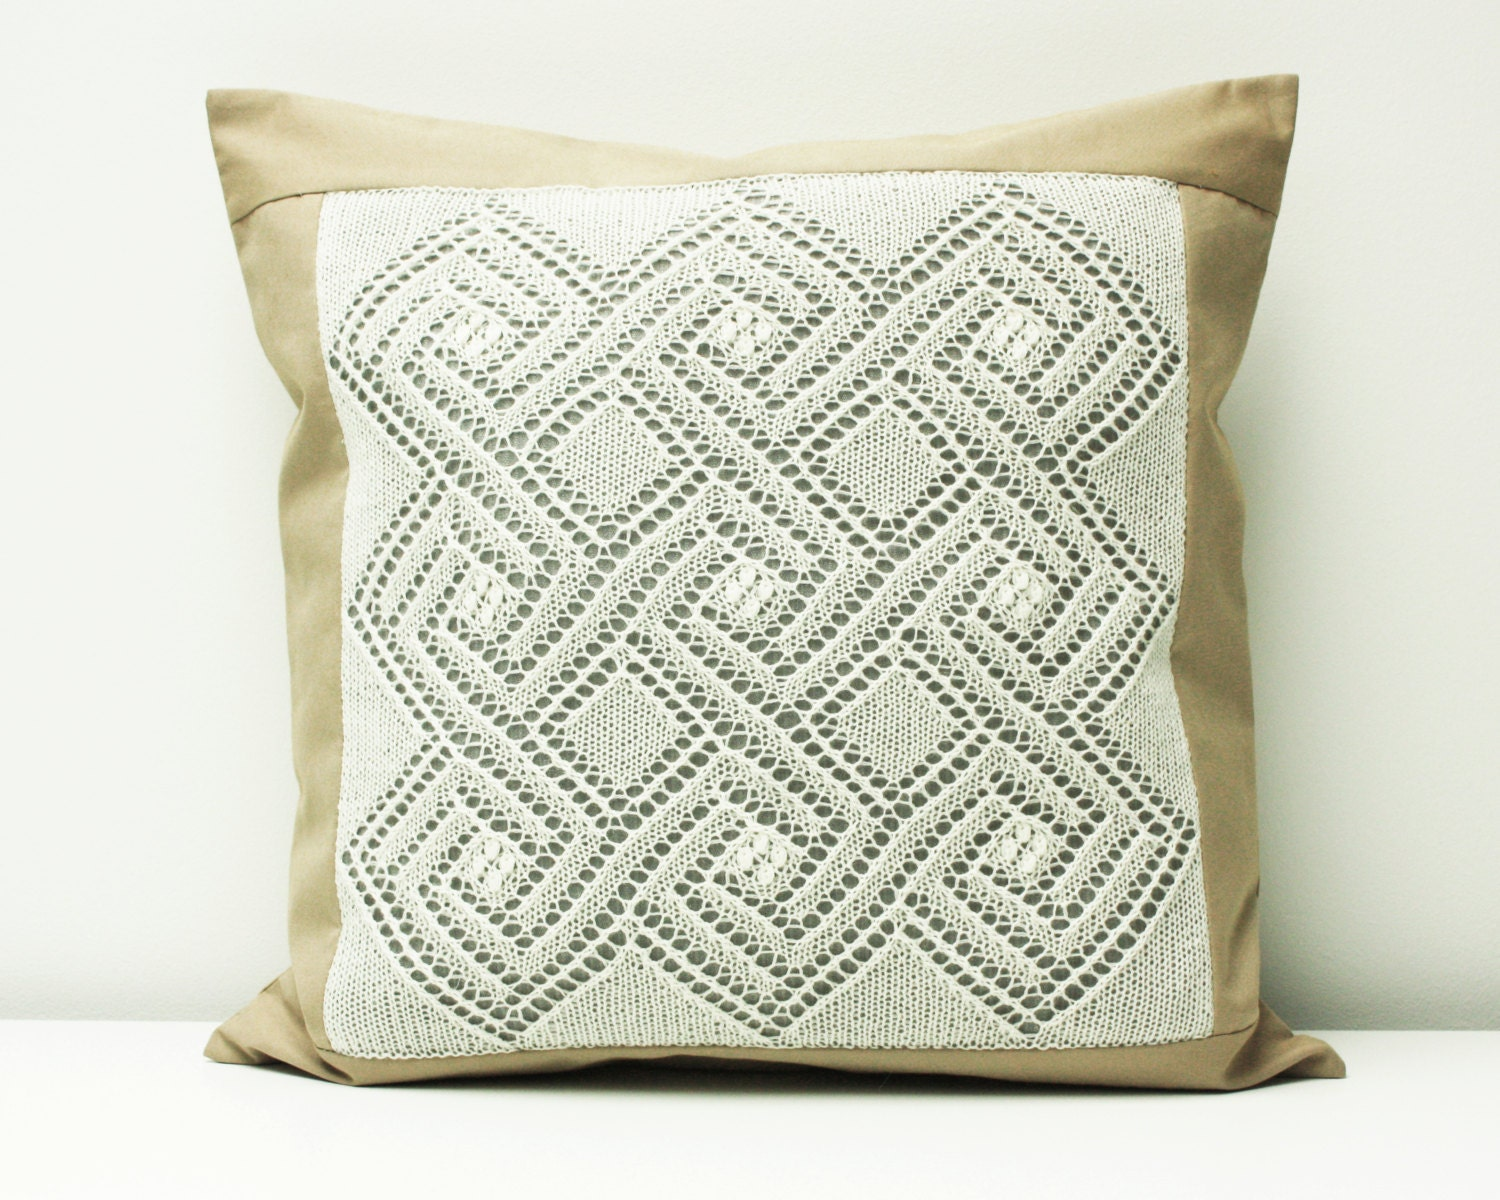 Shabby Chic Knit Pillow Hand Knit Lace Pillow Cottage Chic